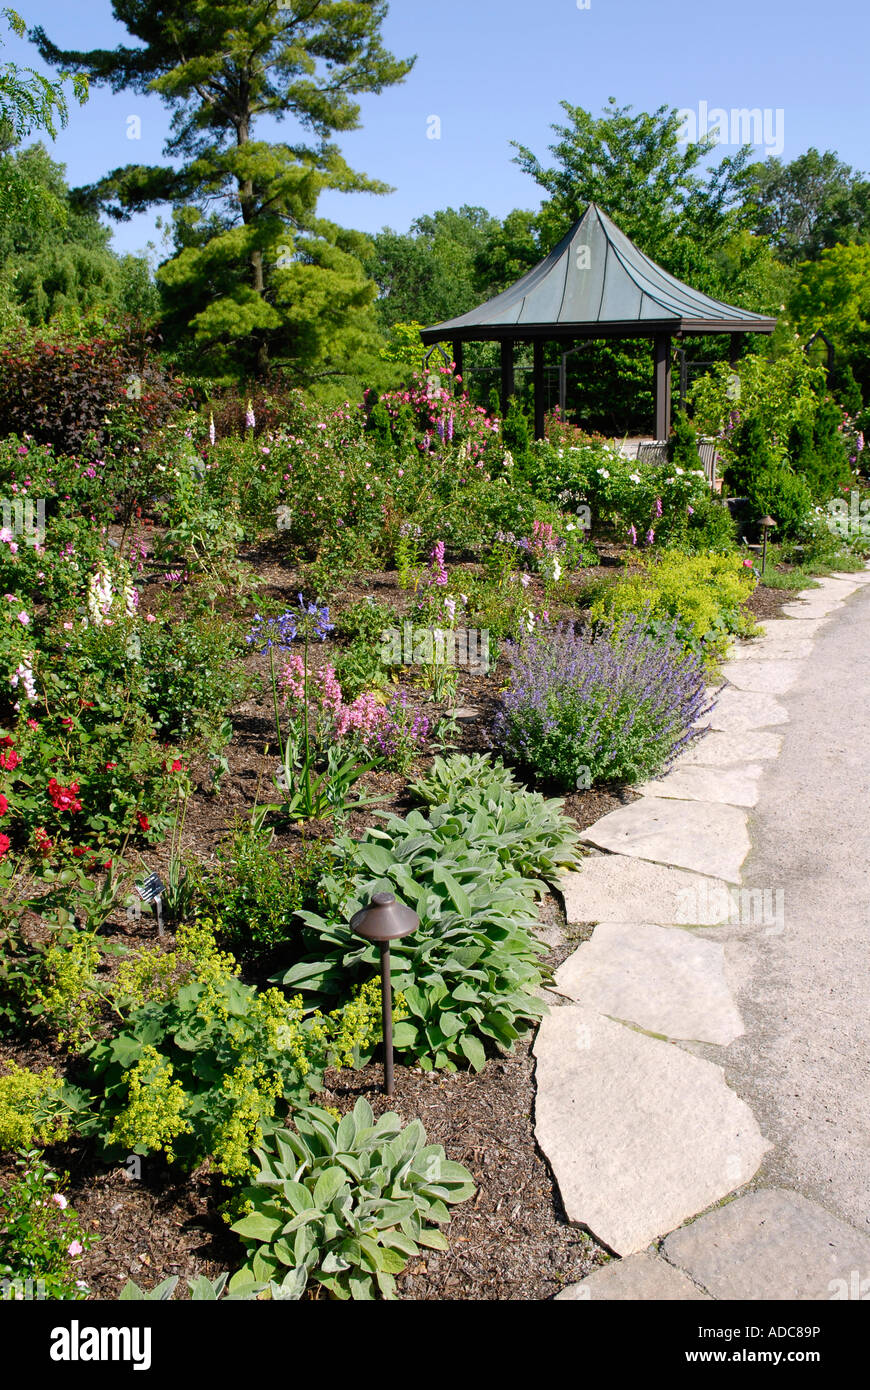 Olbrich Botanical Gardens In Madison Wisconsin Wi Usa Stock Photo Royalty Free Image 13374705